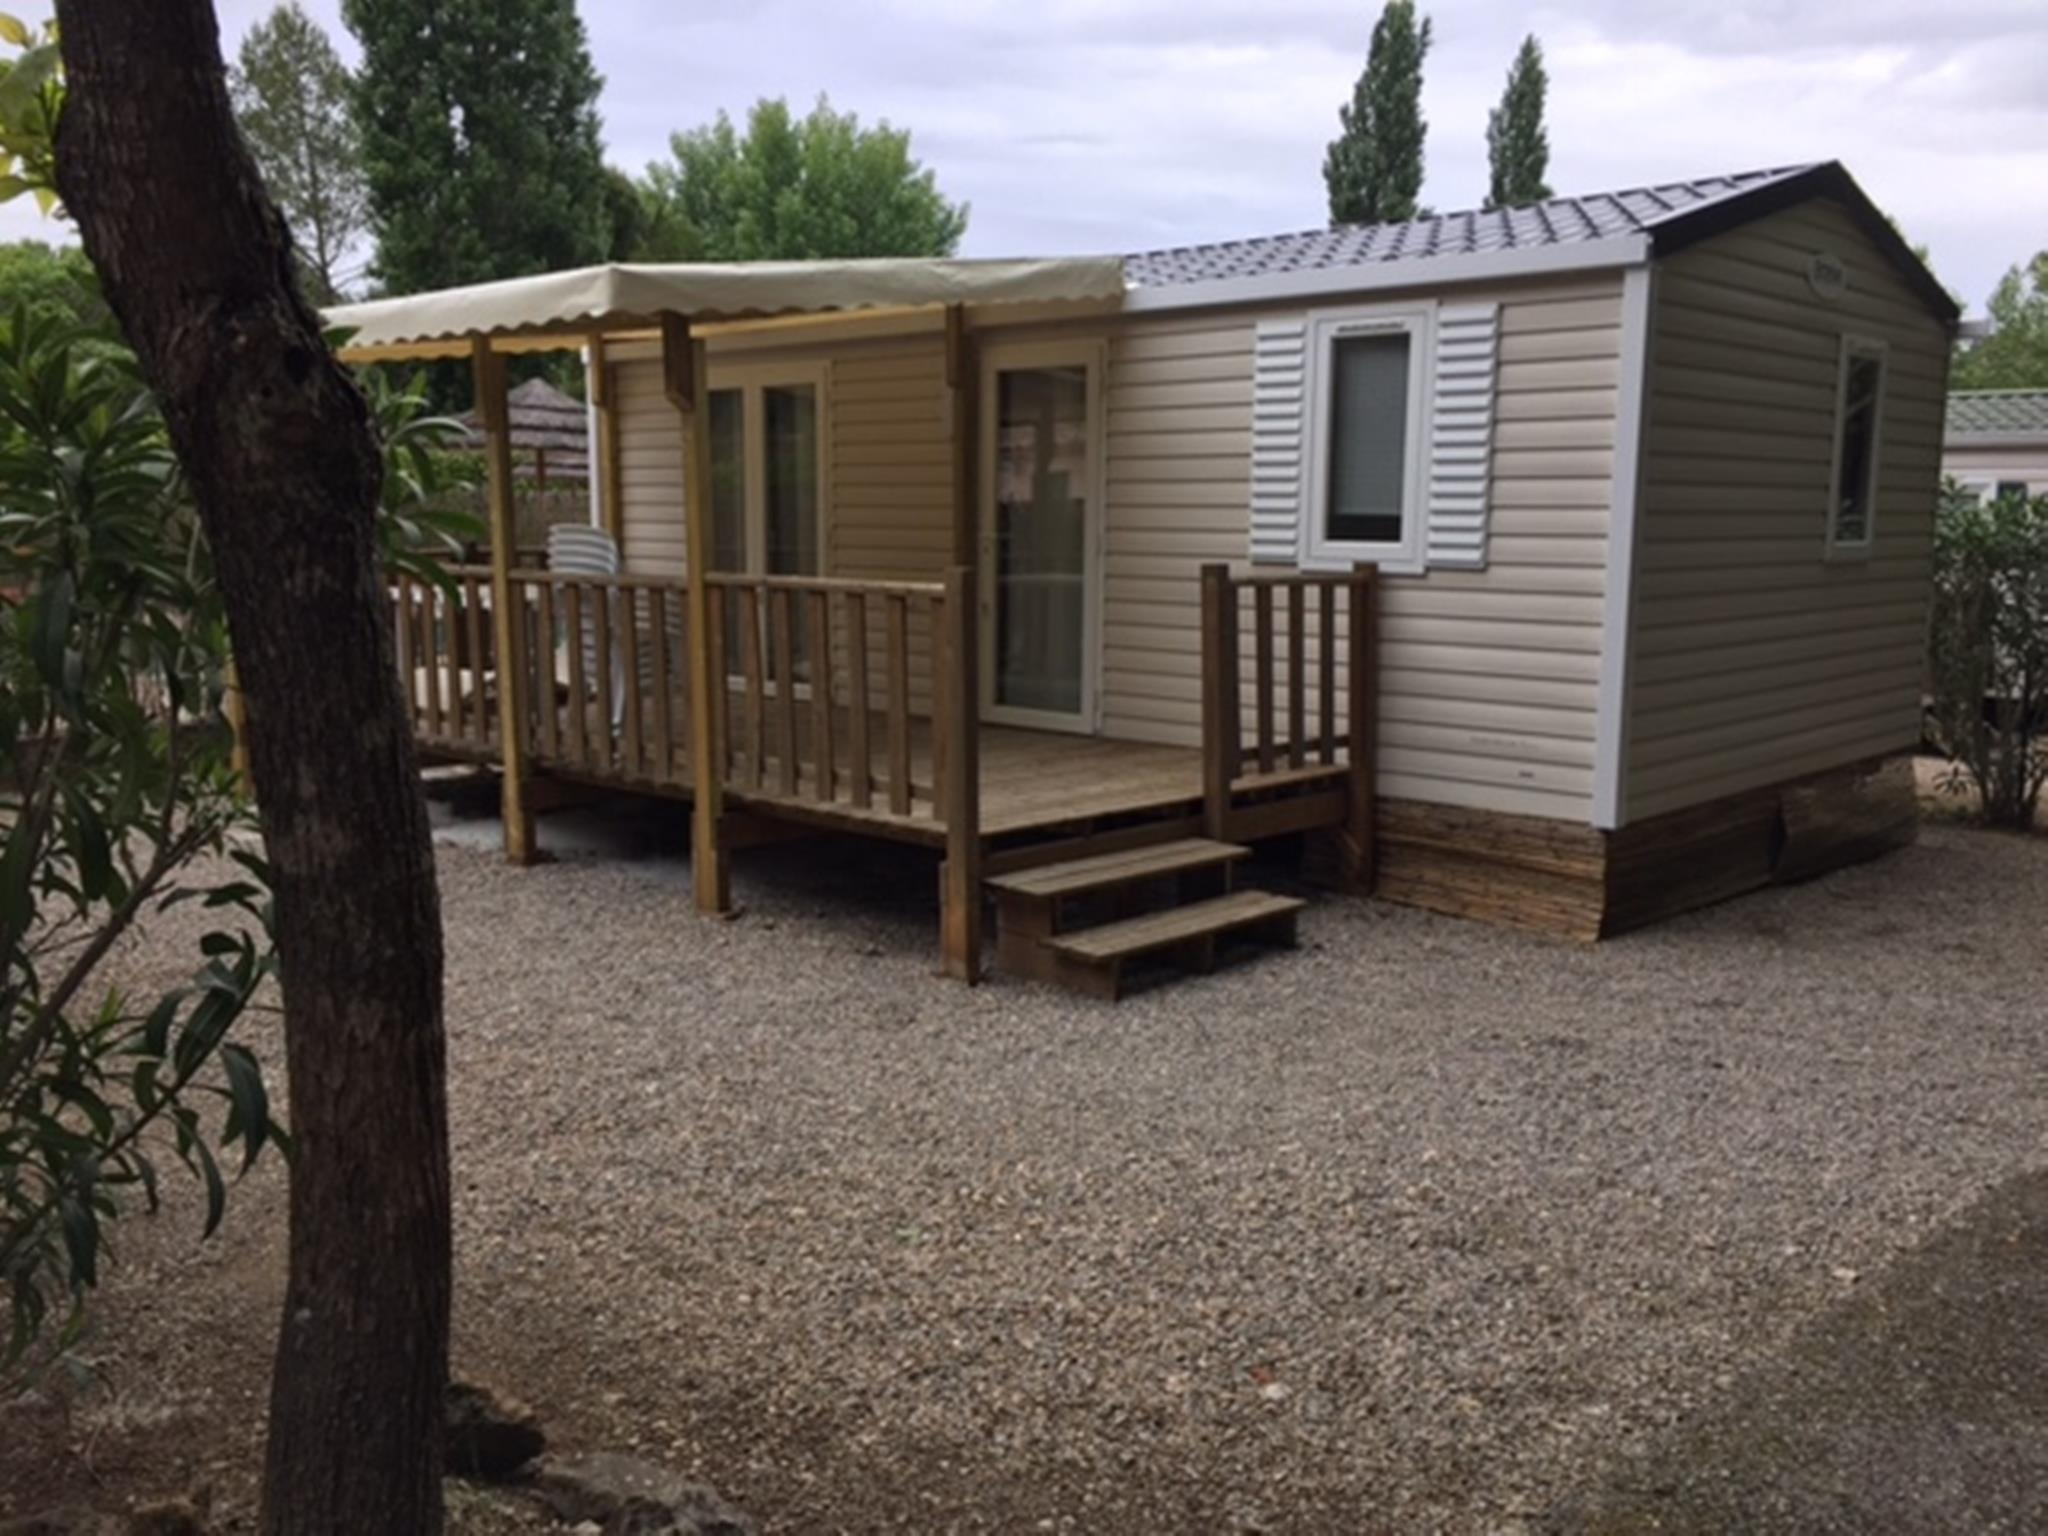 Location - Grand Confort Cottage Riviera Climatise - Camping Fouguières